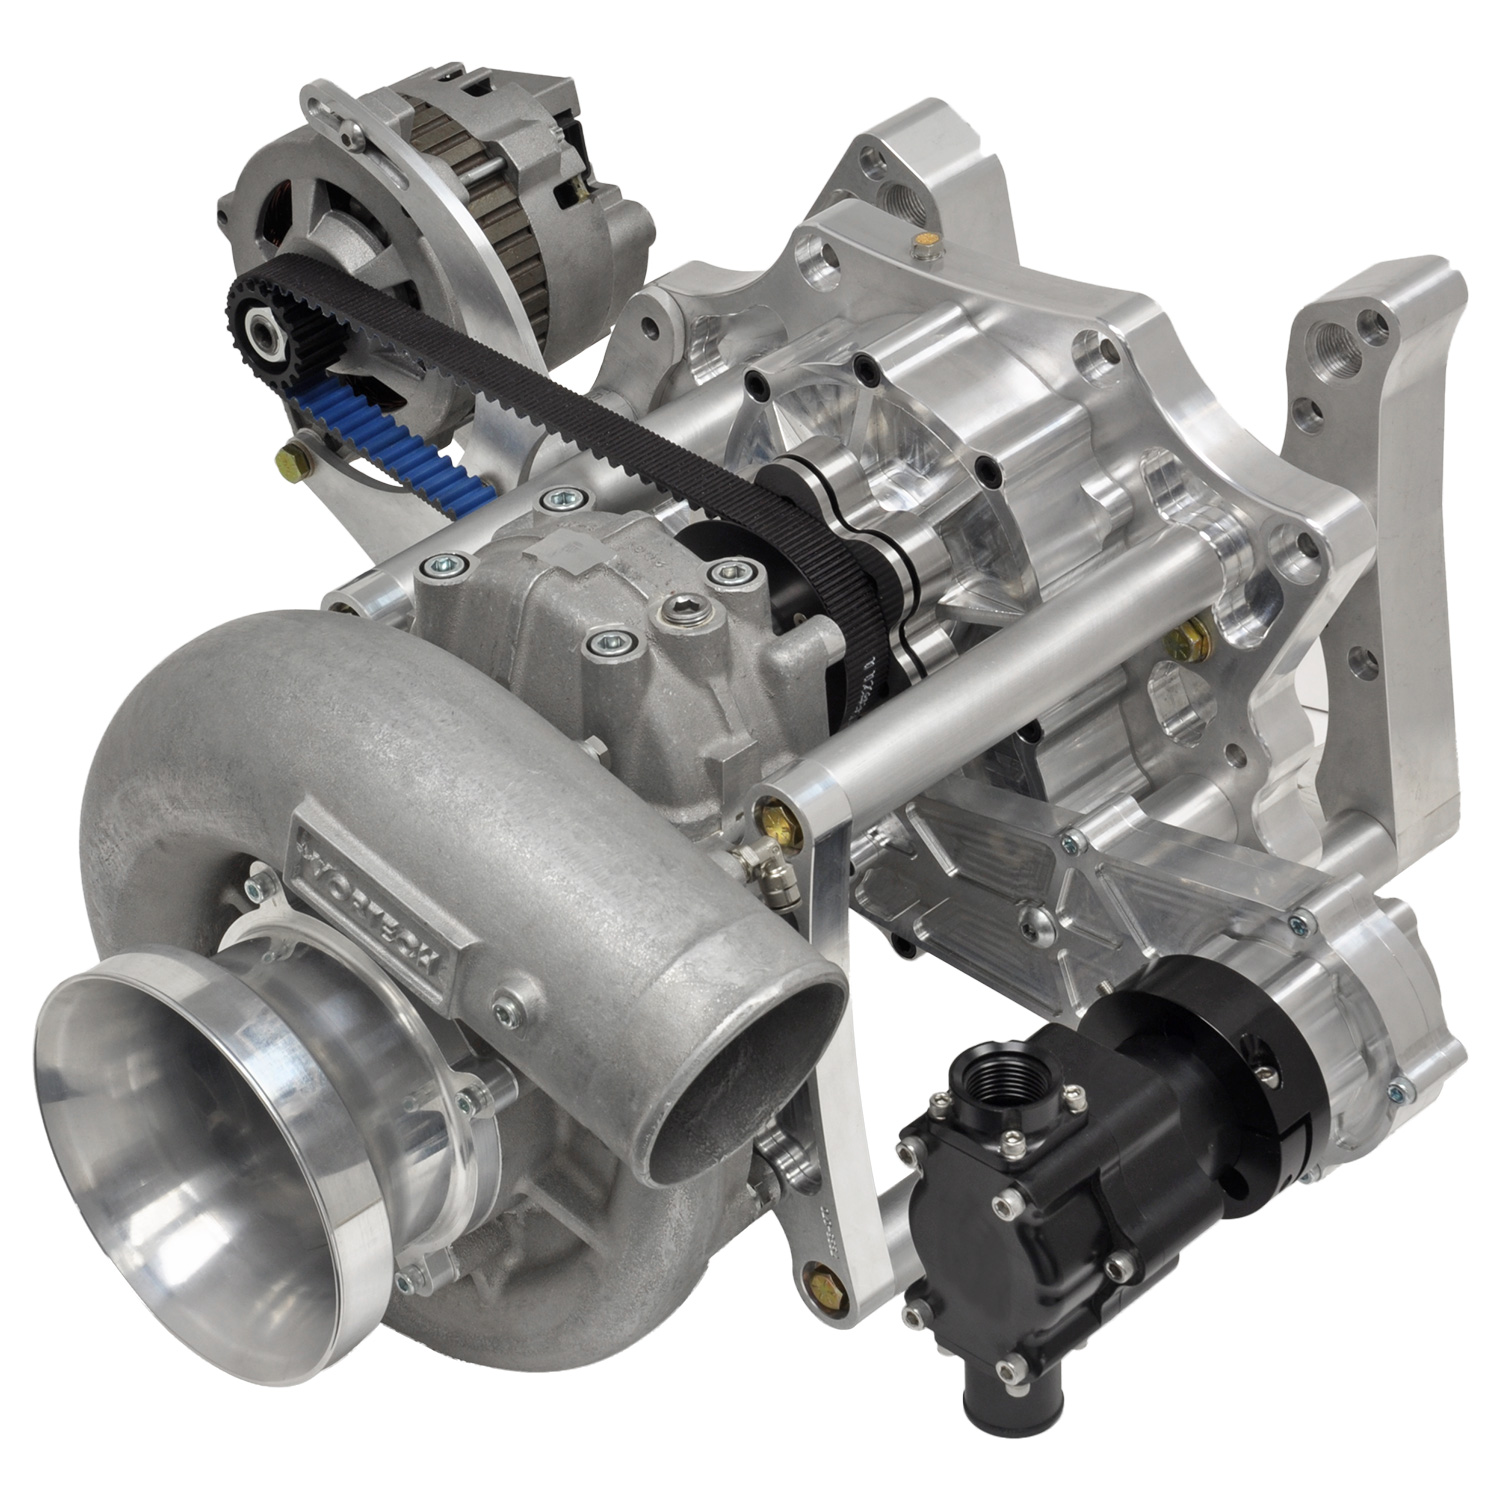 Centrifugal Supercharger Small Block Mopar: BangShift.com New CDS Alternator And Accessory Drives From